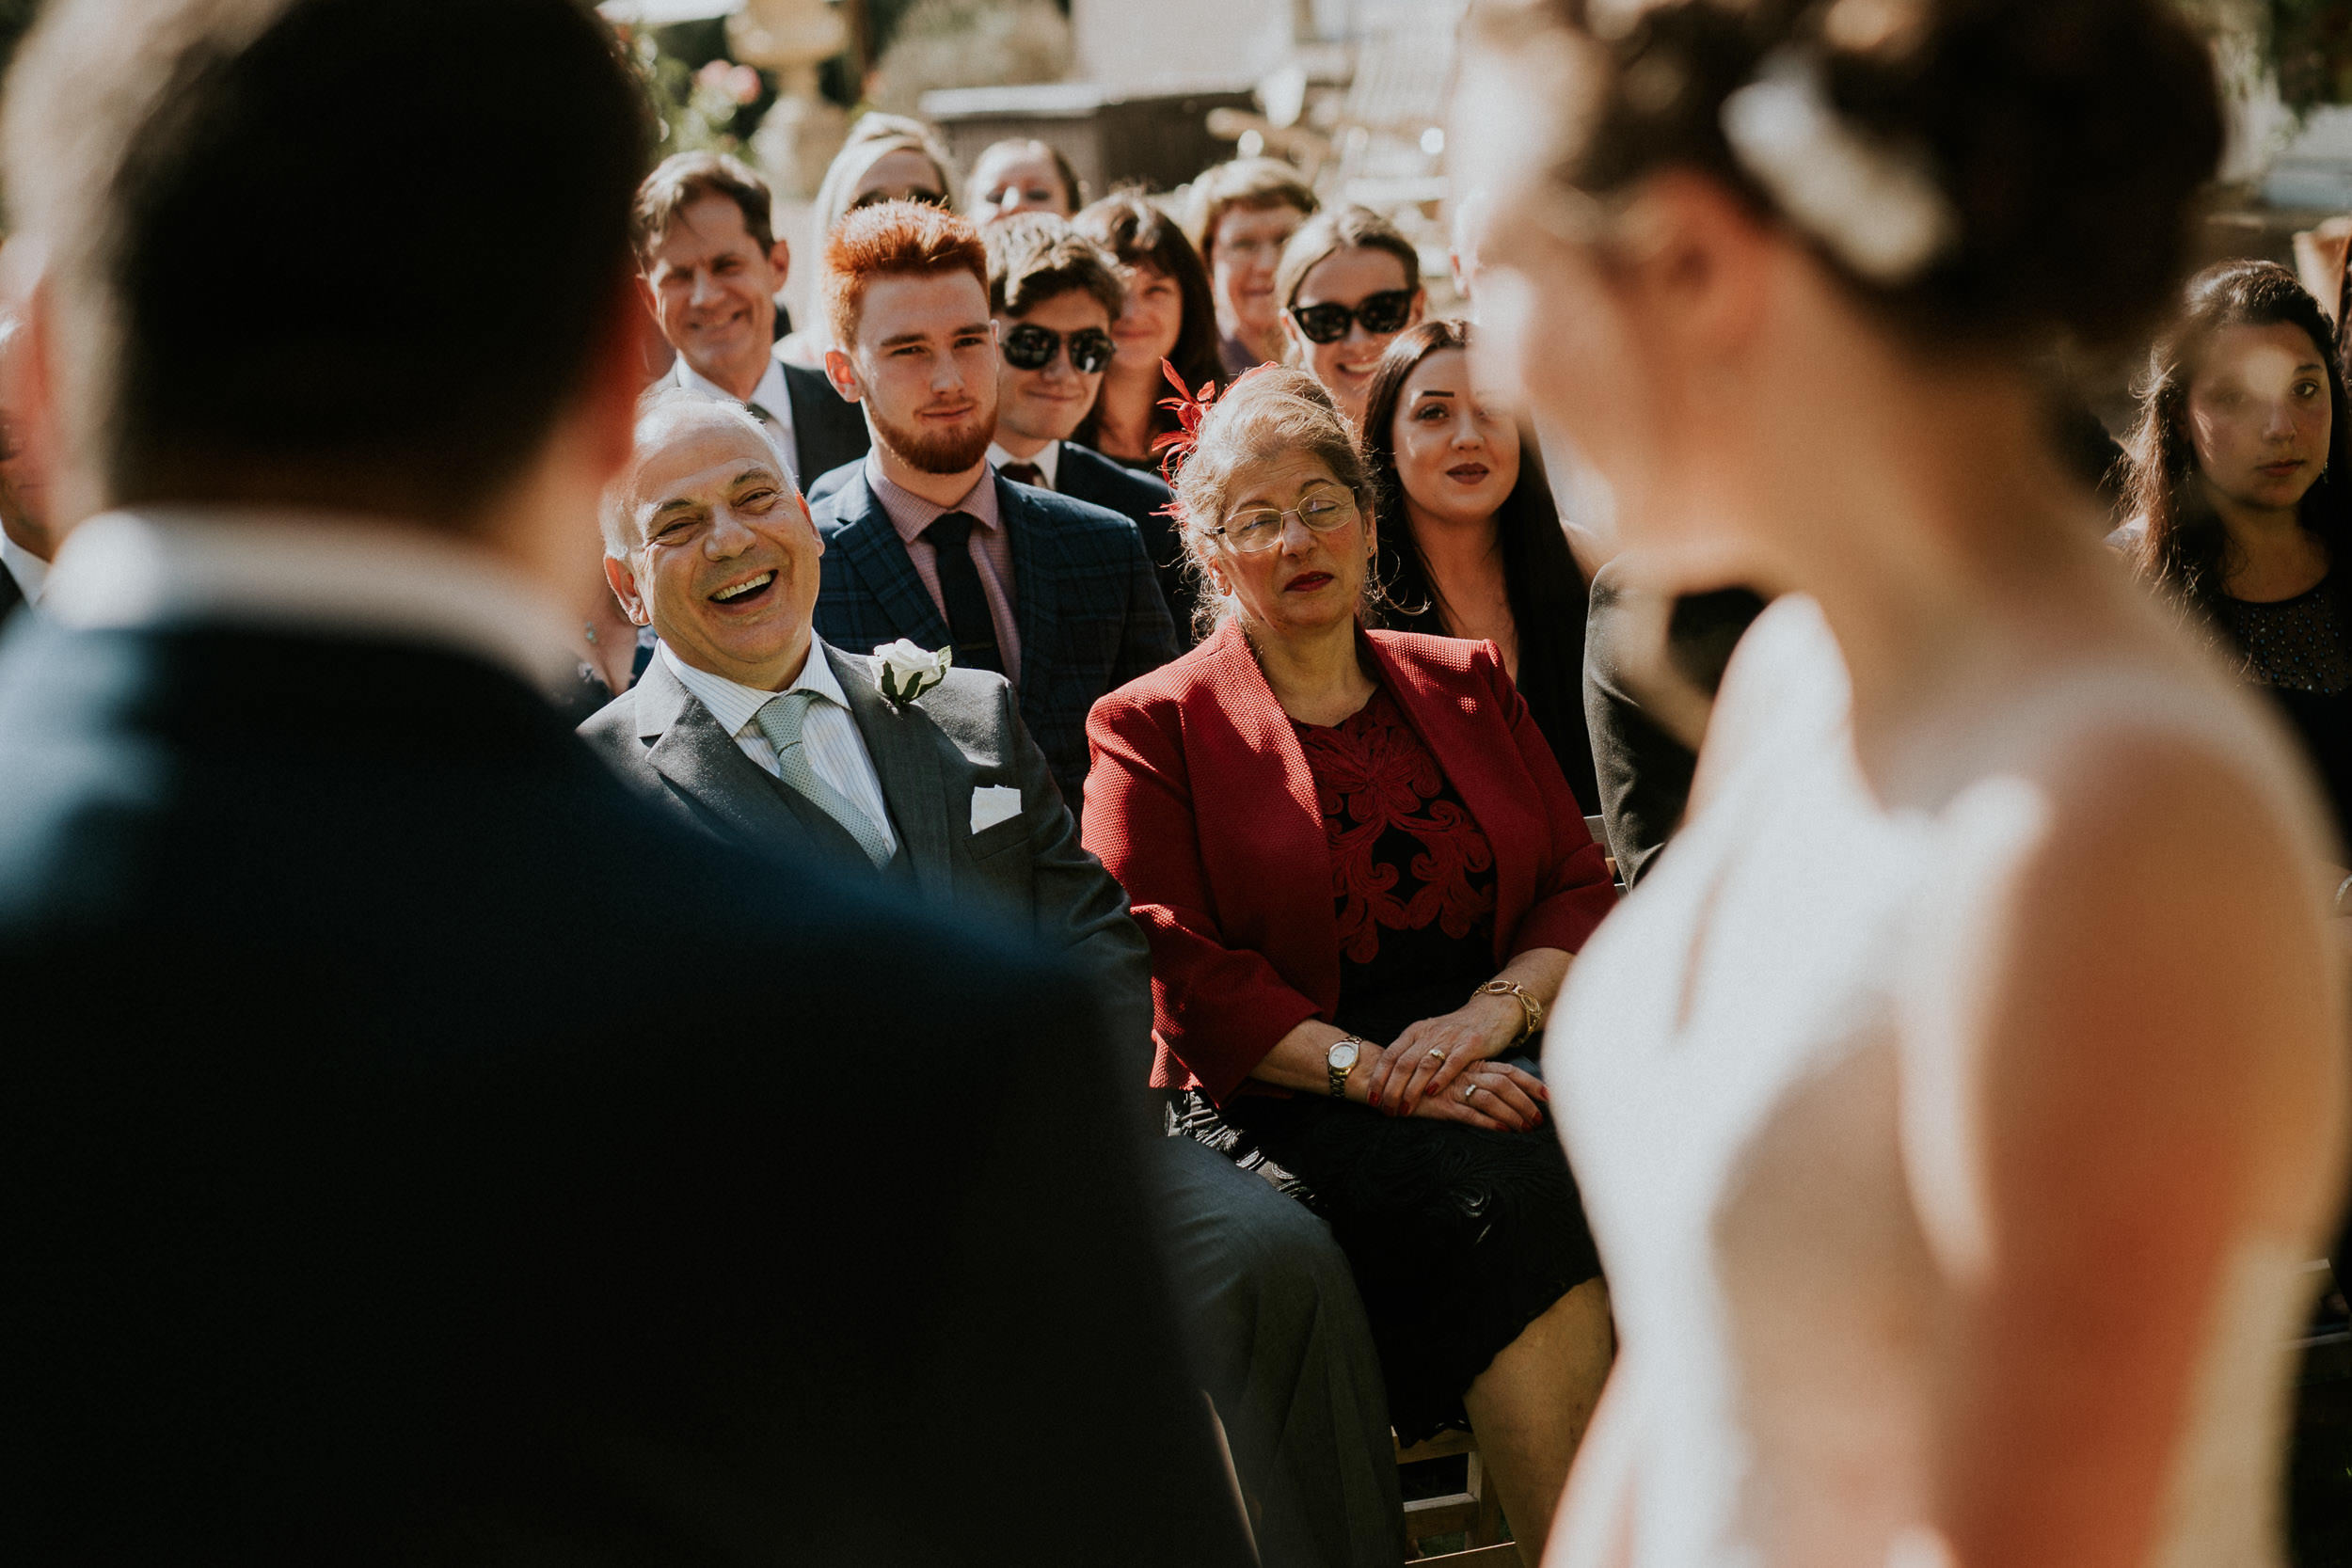 Pennard House Wedding - Ceremony